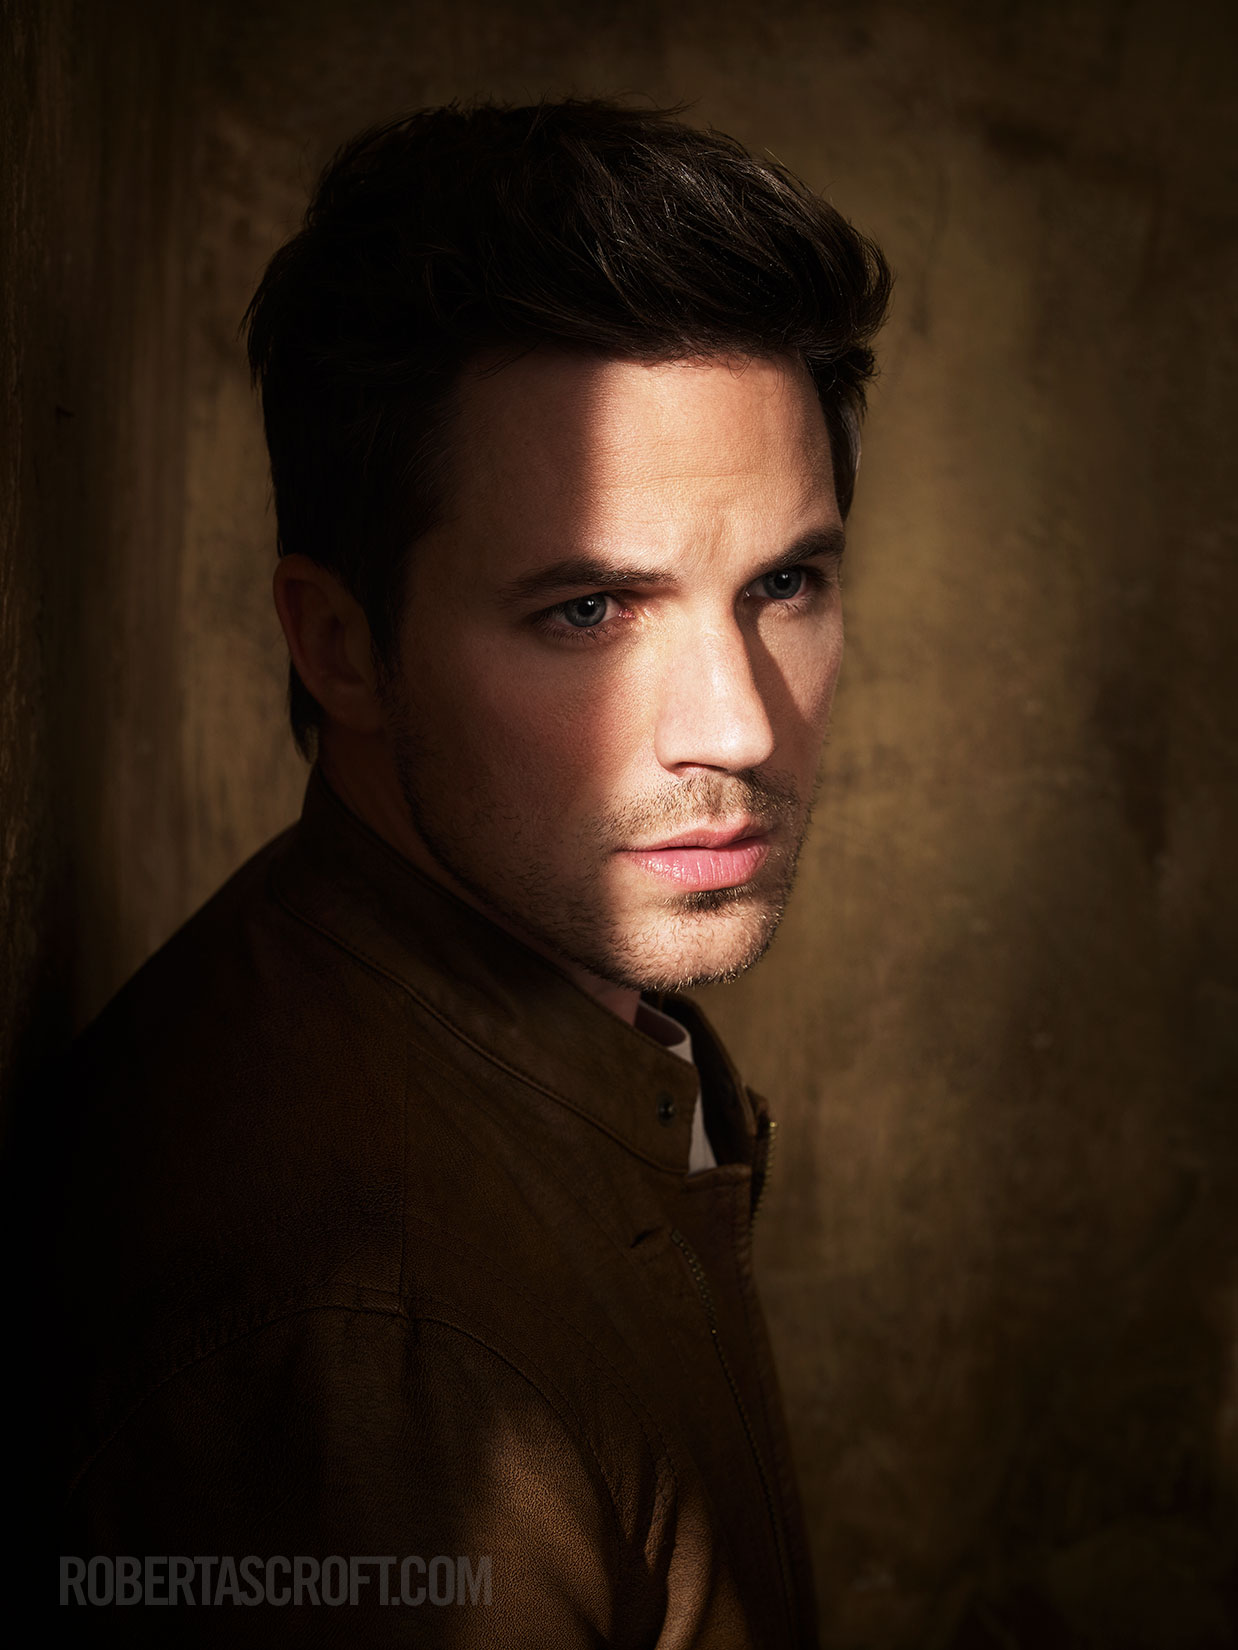 Matt-Lanter-by-Robert-Ascroft